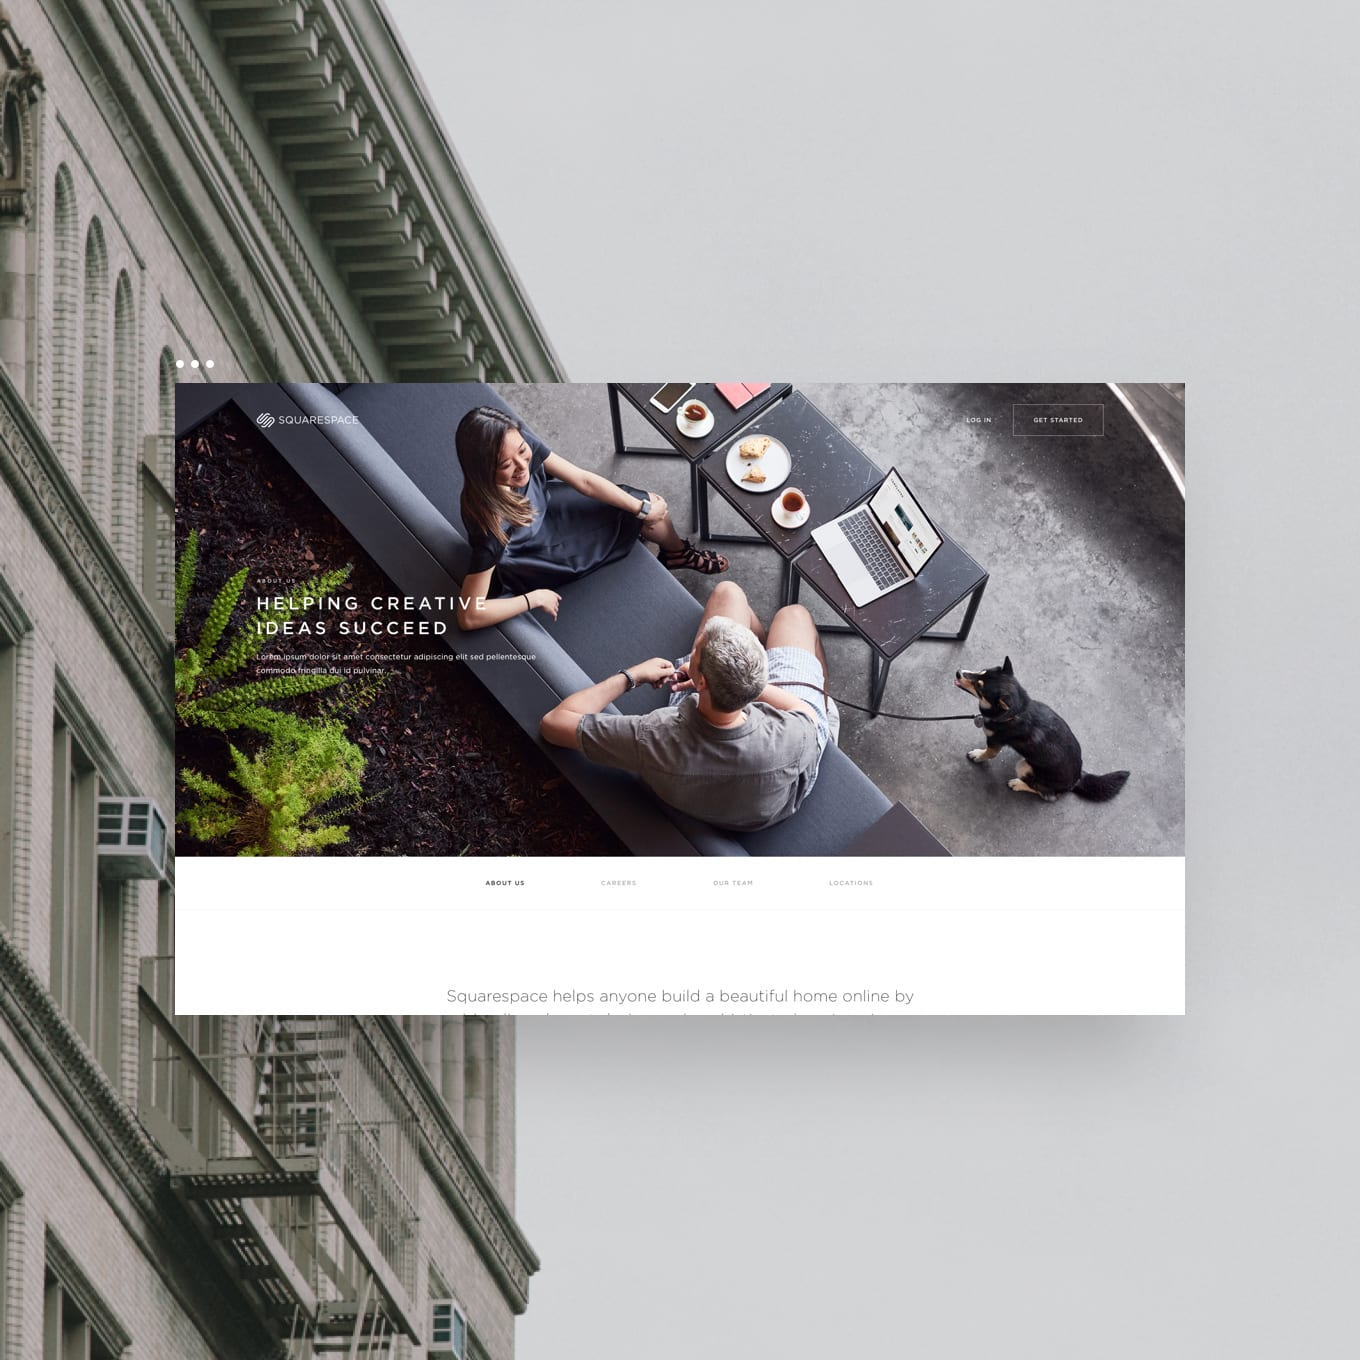 Squarespace Company Pages